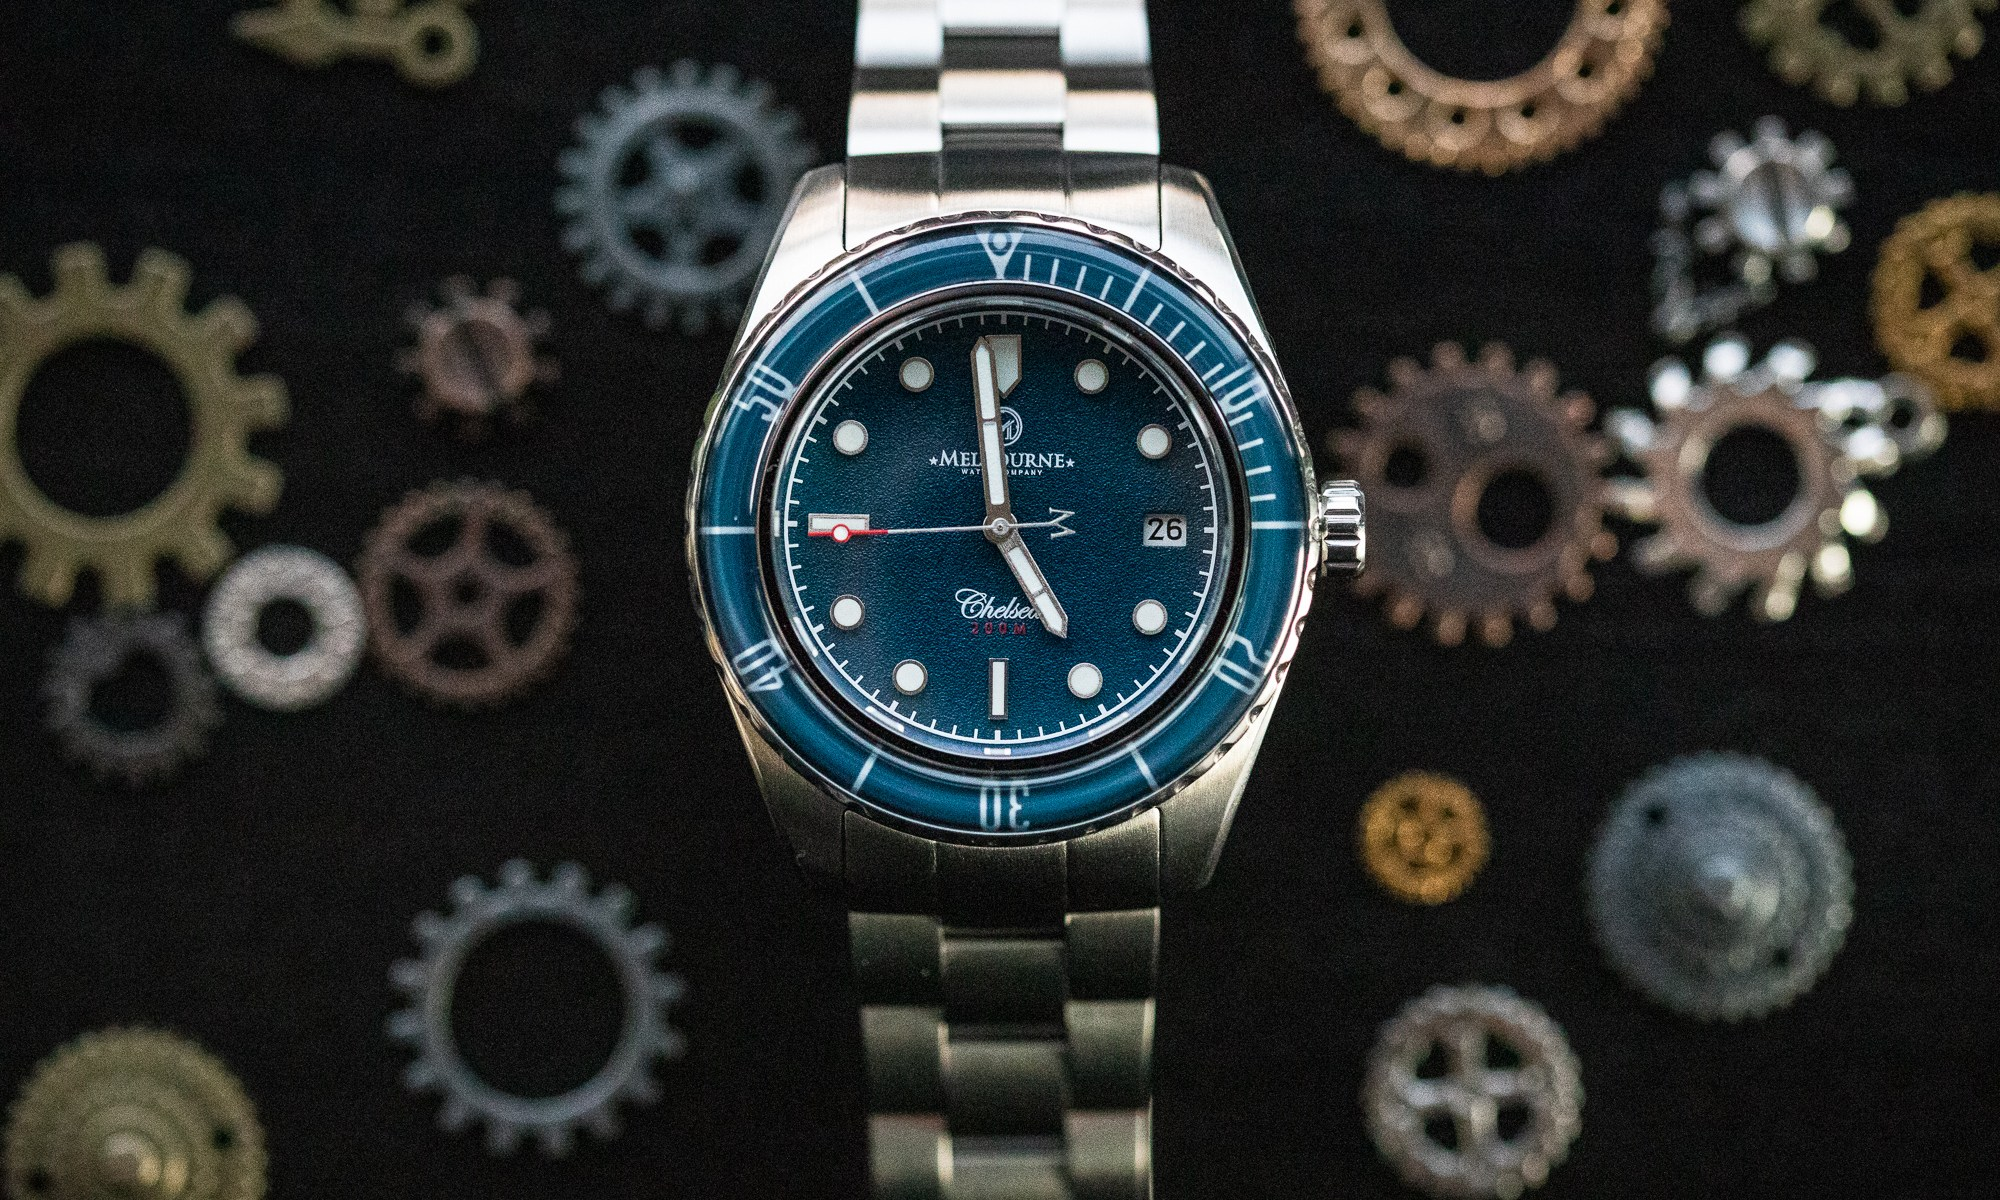 Melbourne Watch Company Chelsea 26